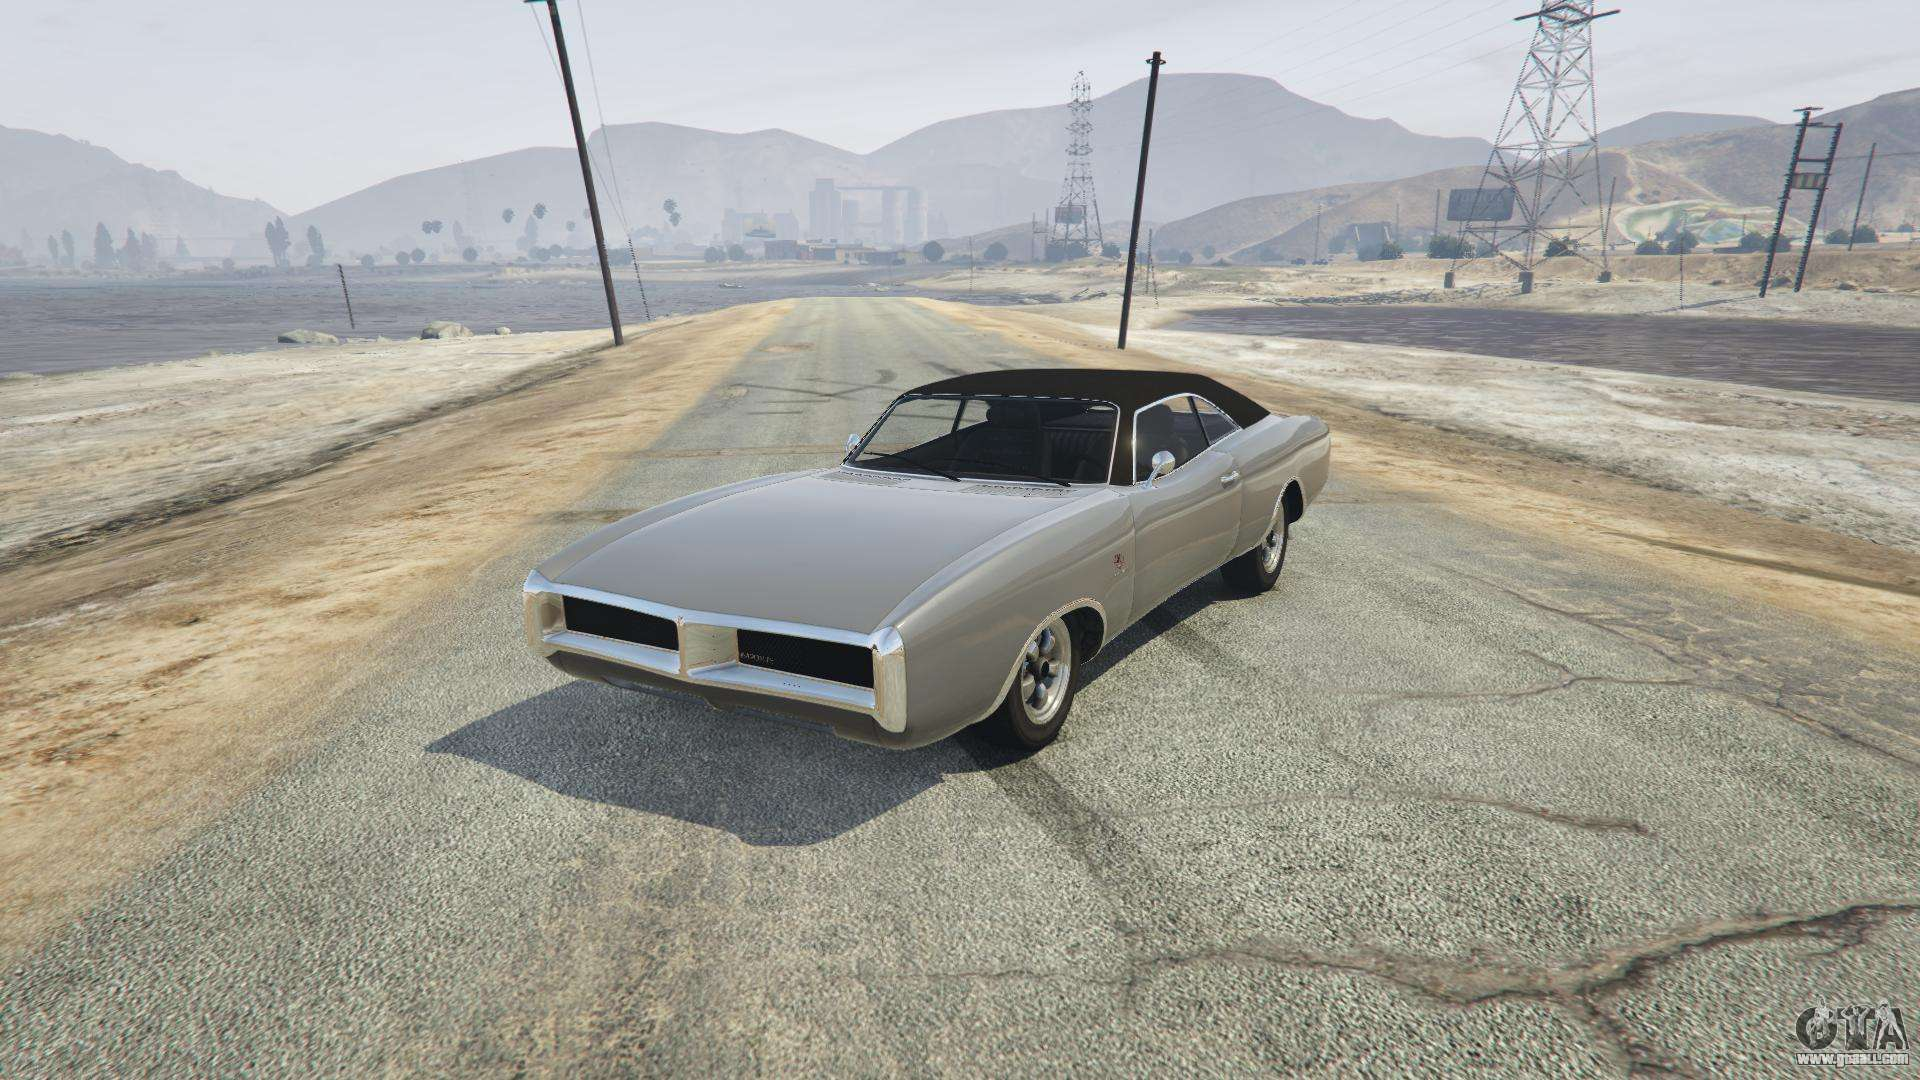 Imponte Dukes of GTA 5 - front view